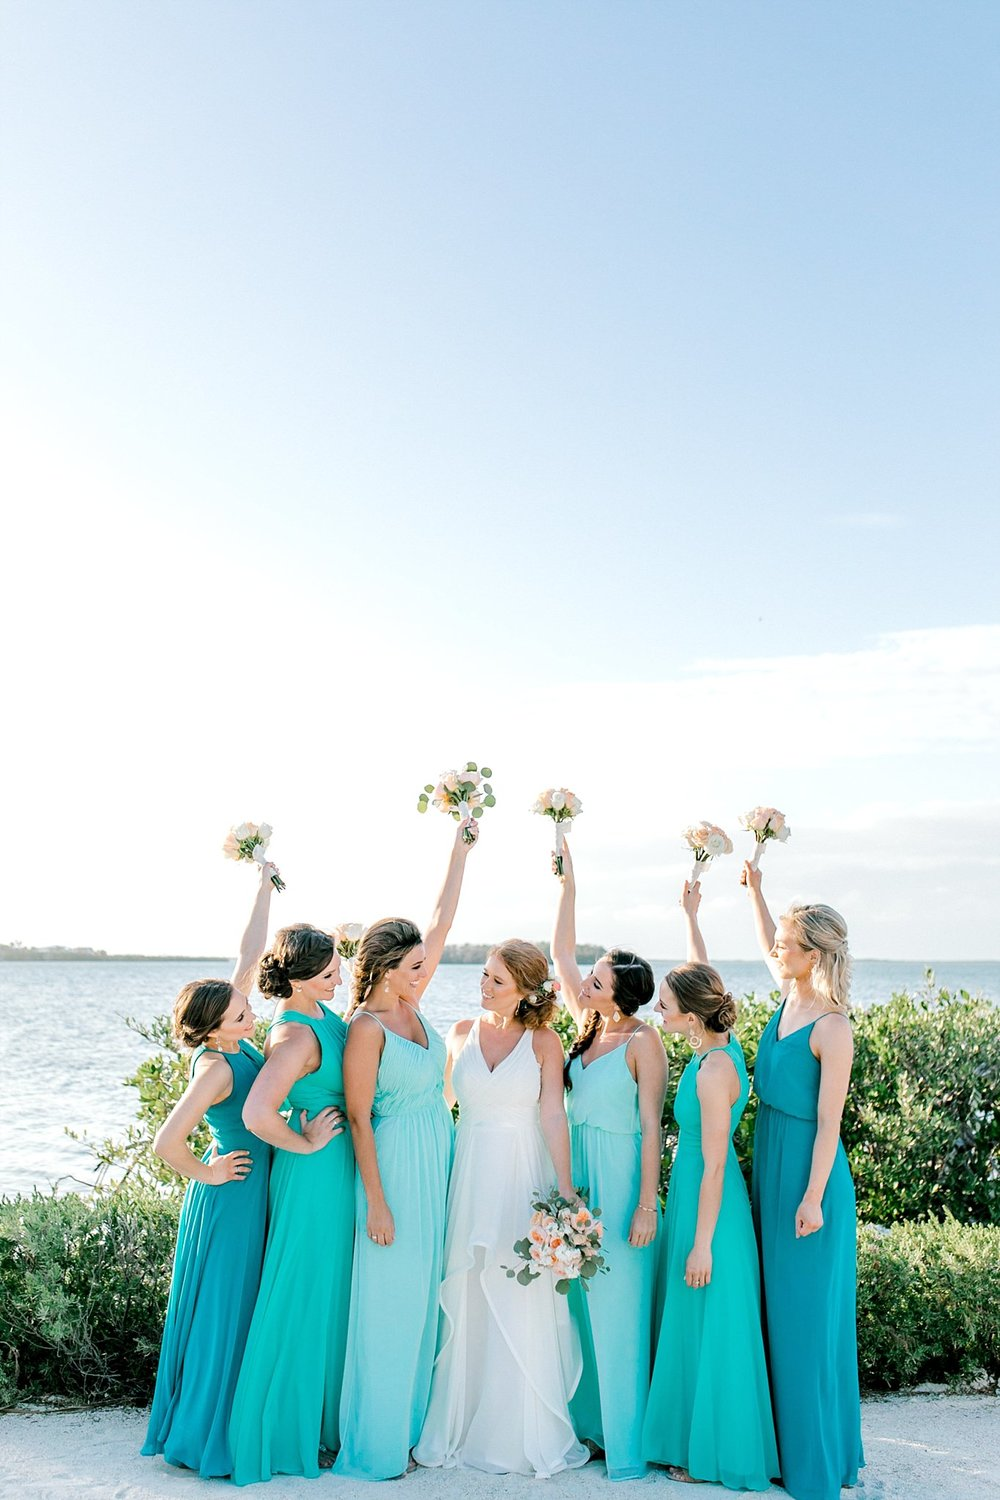 Magdalena Studios Key Largo Destination Wedding Photographer Tropical Island Florida Wedding Miami Vizcaya Gardens Romantic Destination Dreamy Film Wedding Photographer10.jpg